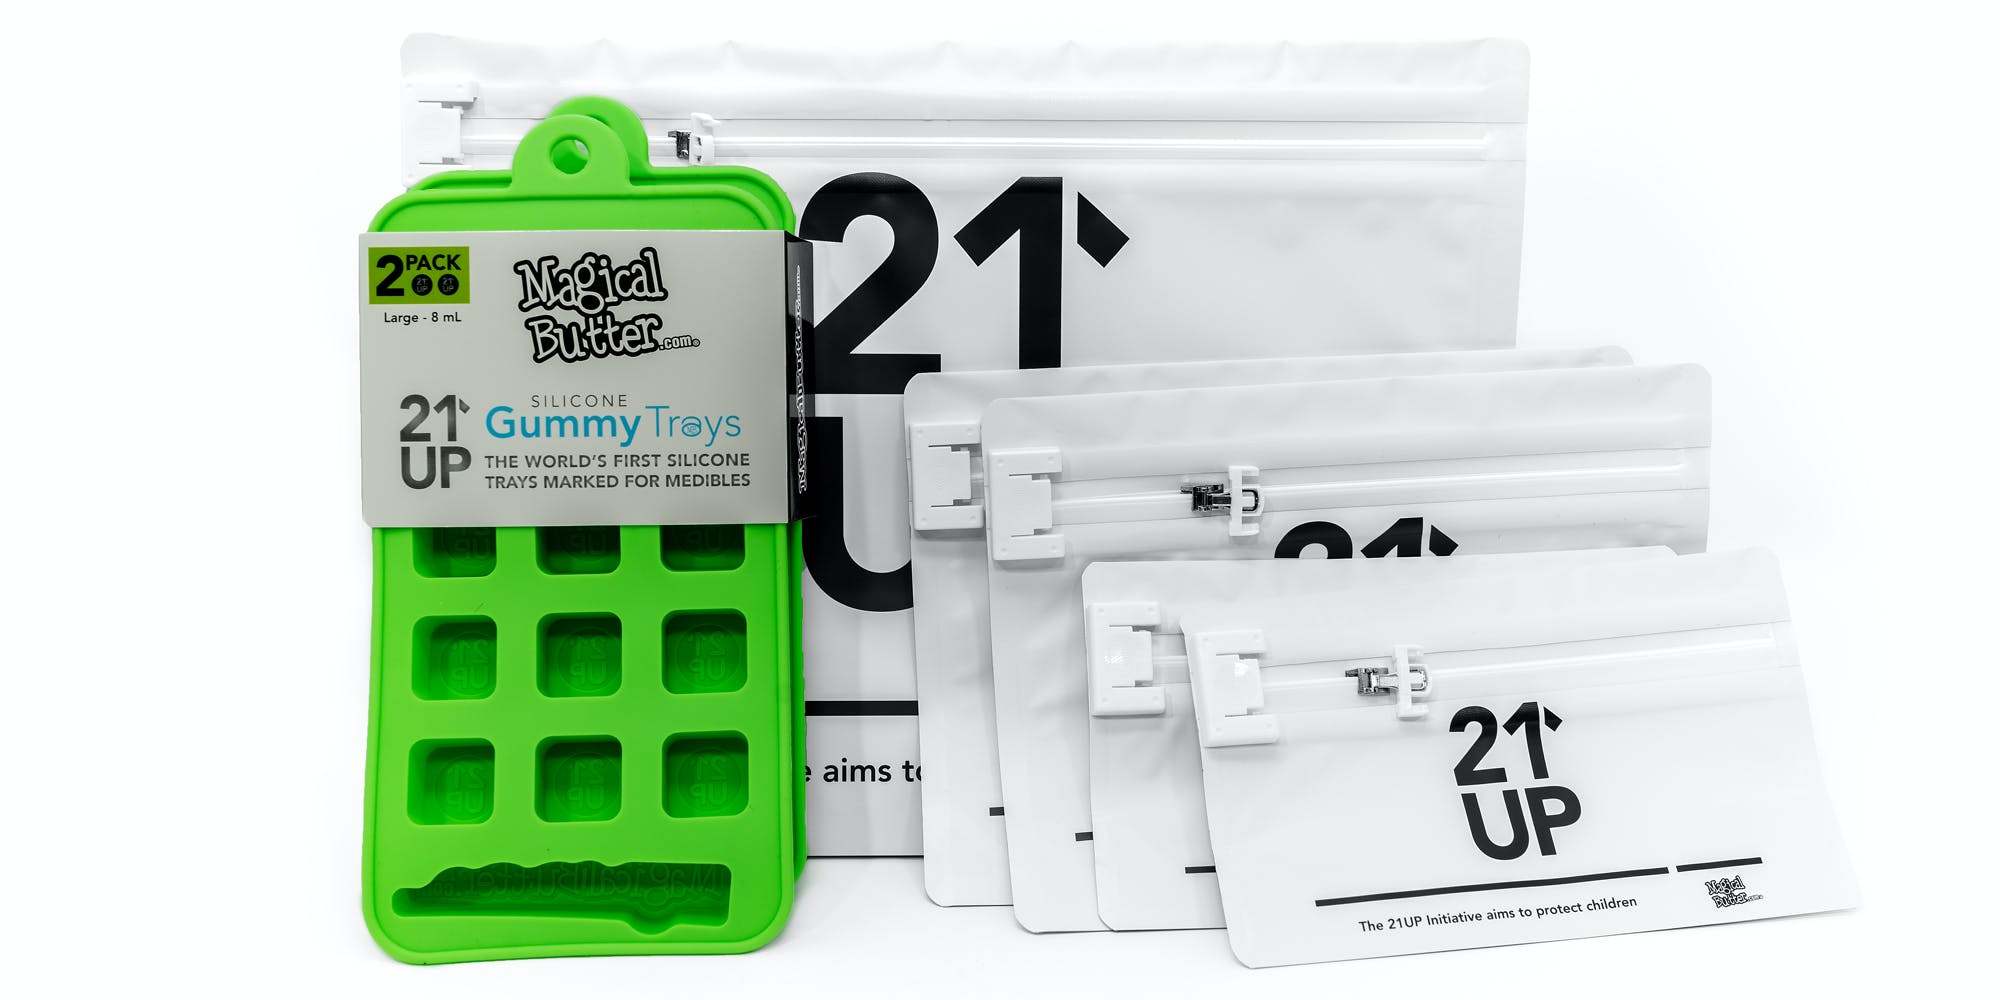 MB's 21UP Exit Bags are the safest solution to keeping your edibles away from the wrong hands